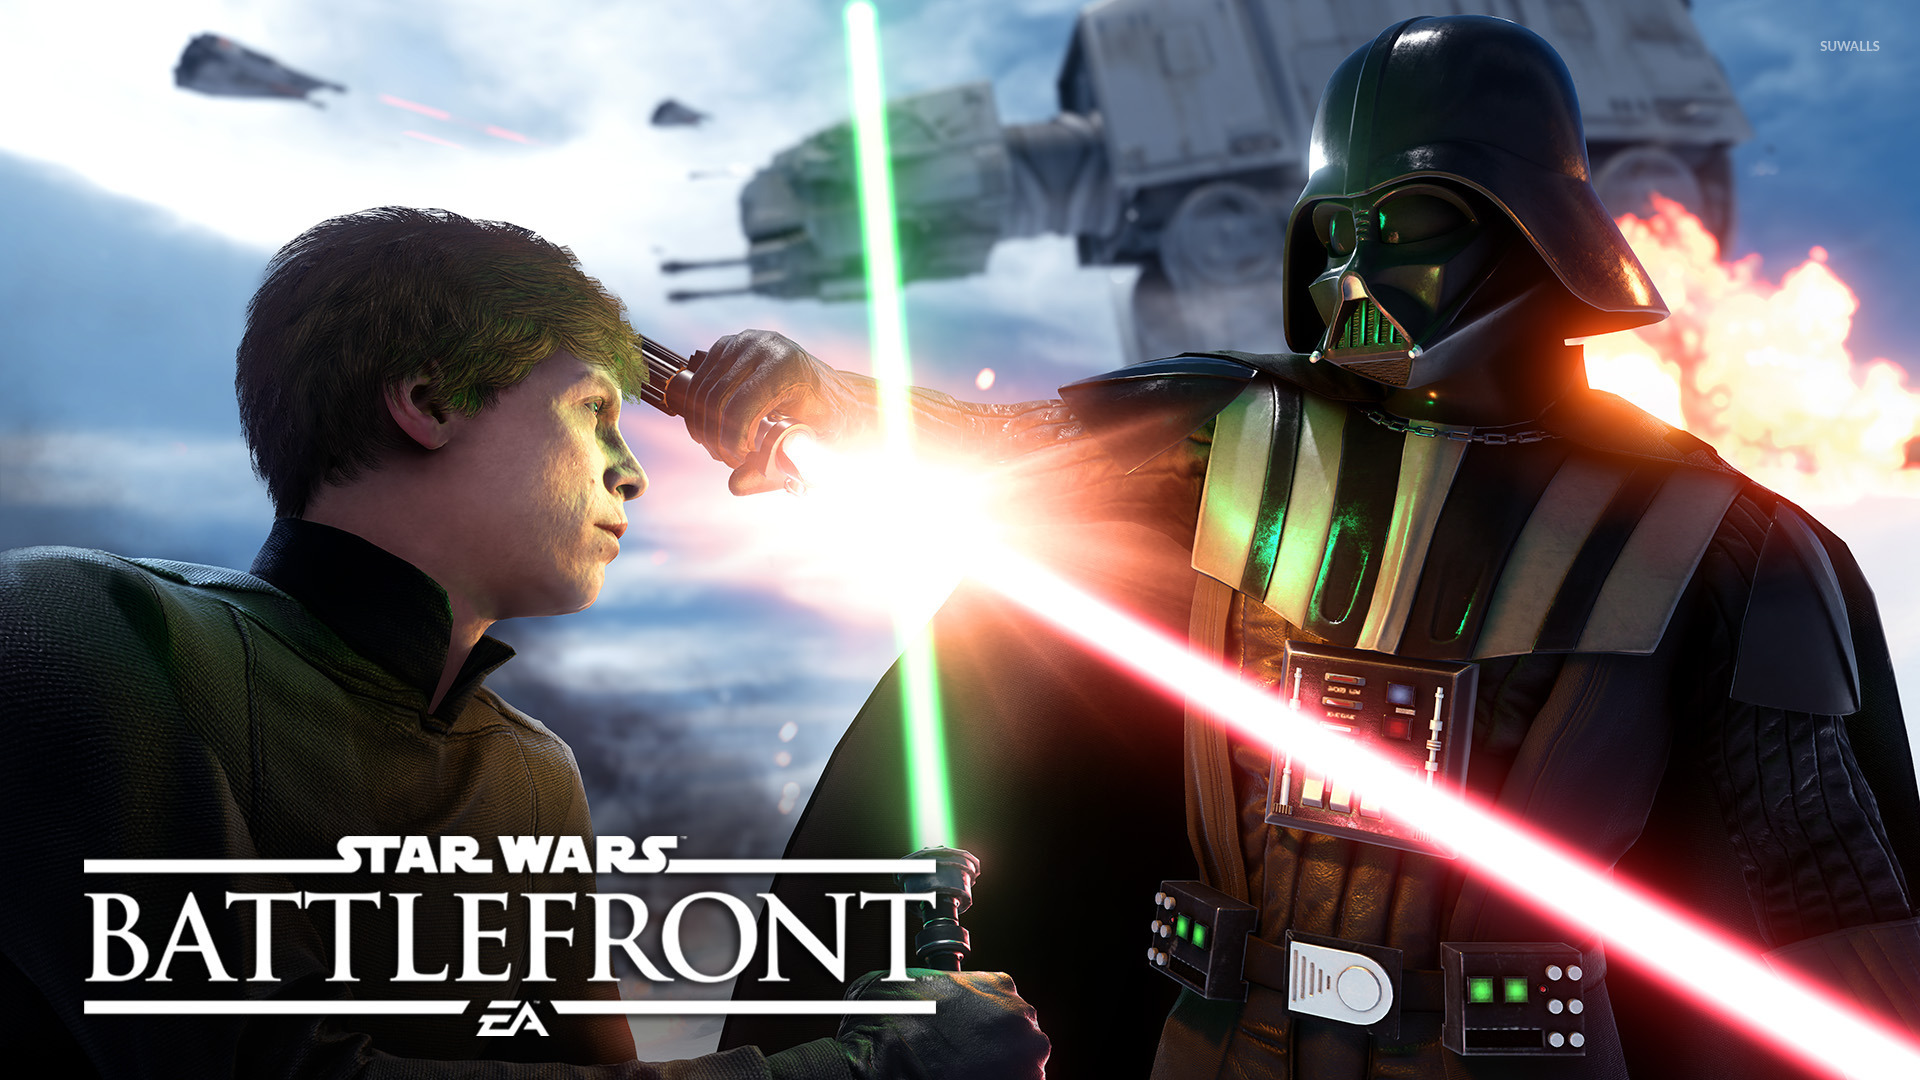 Star Wars Battlefront Wallpaper Game Wallpapers 44843